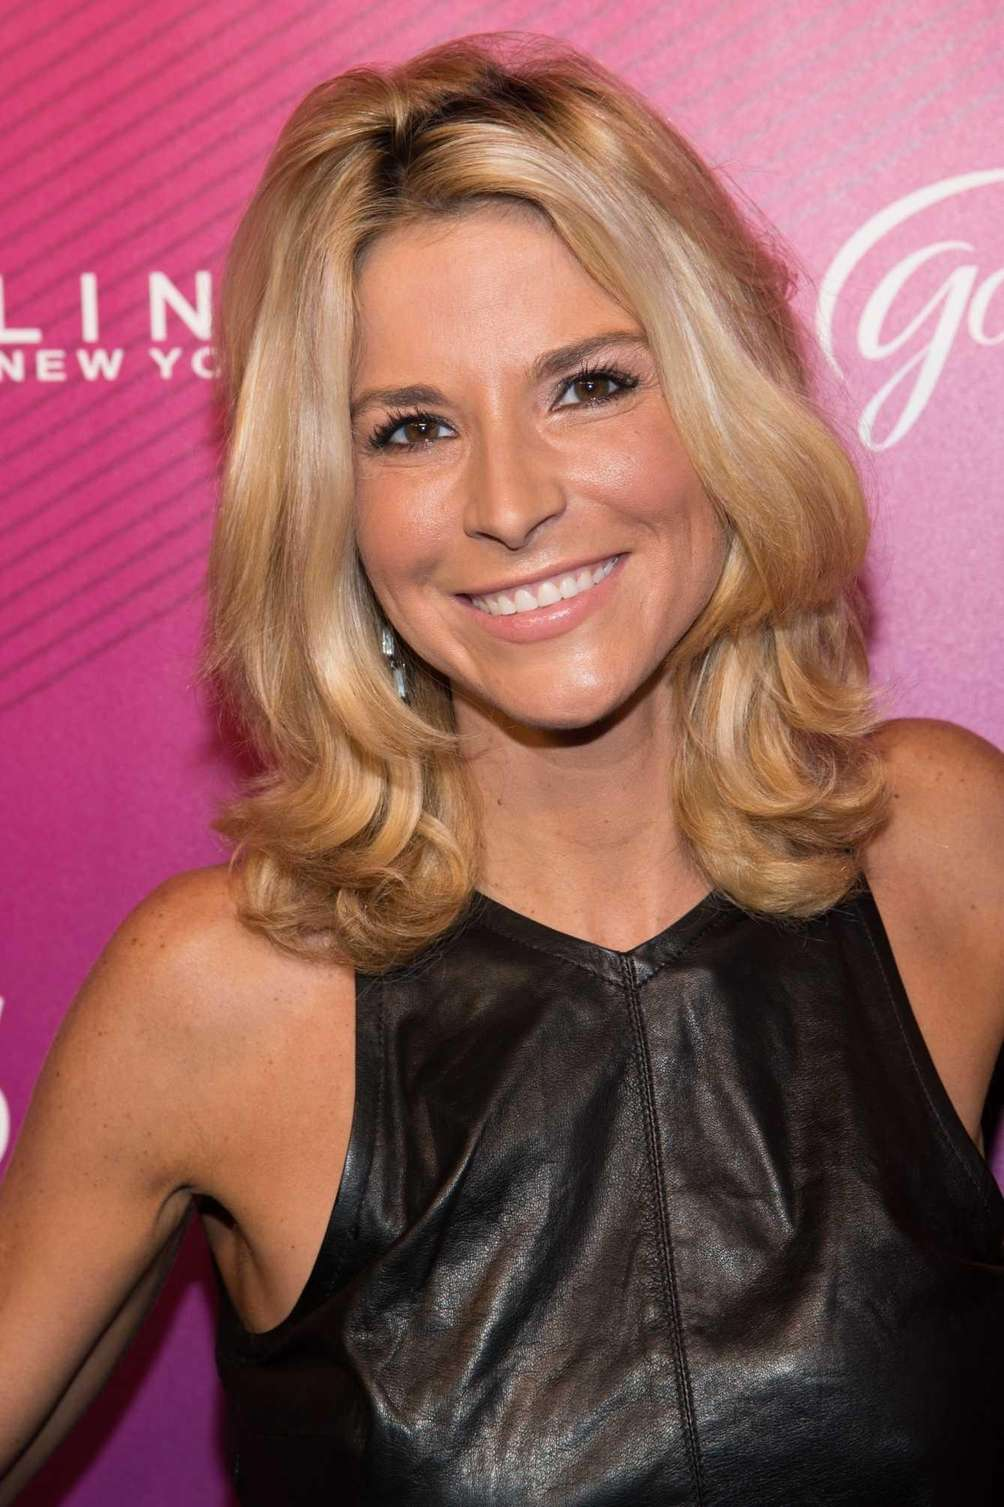 TV personality Diem Brown, a cast member on